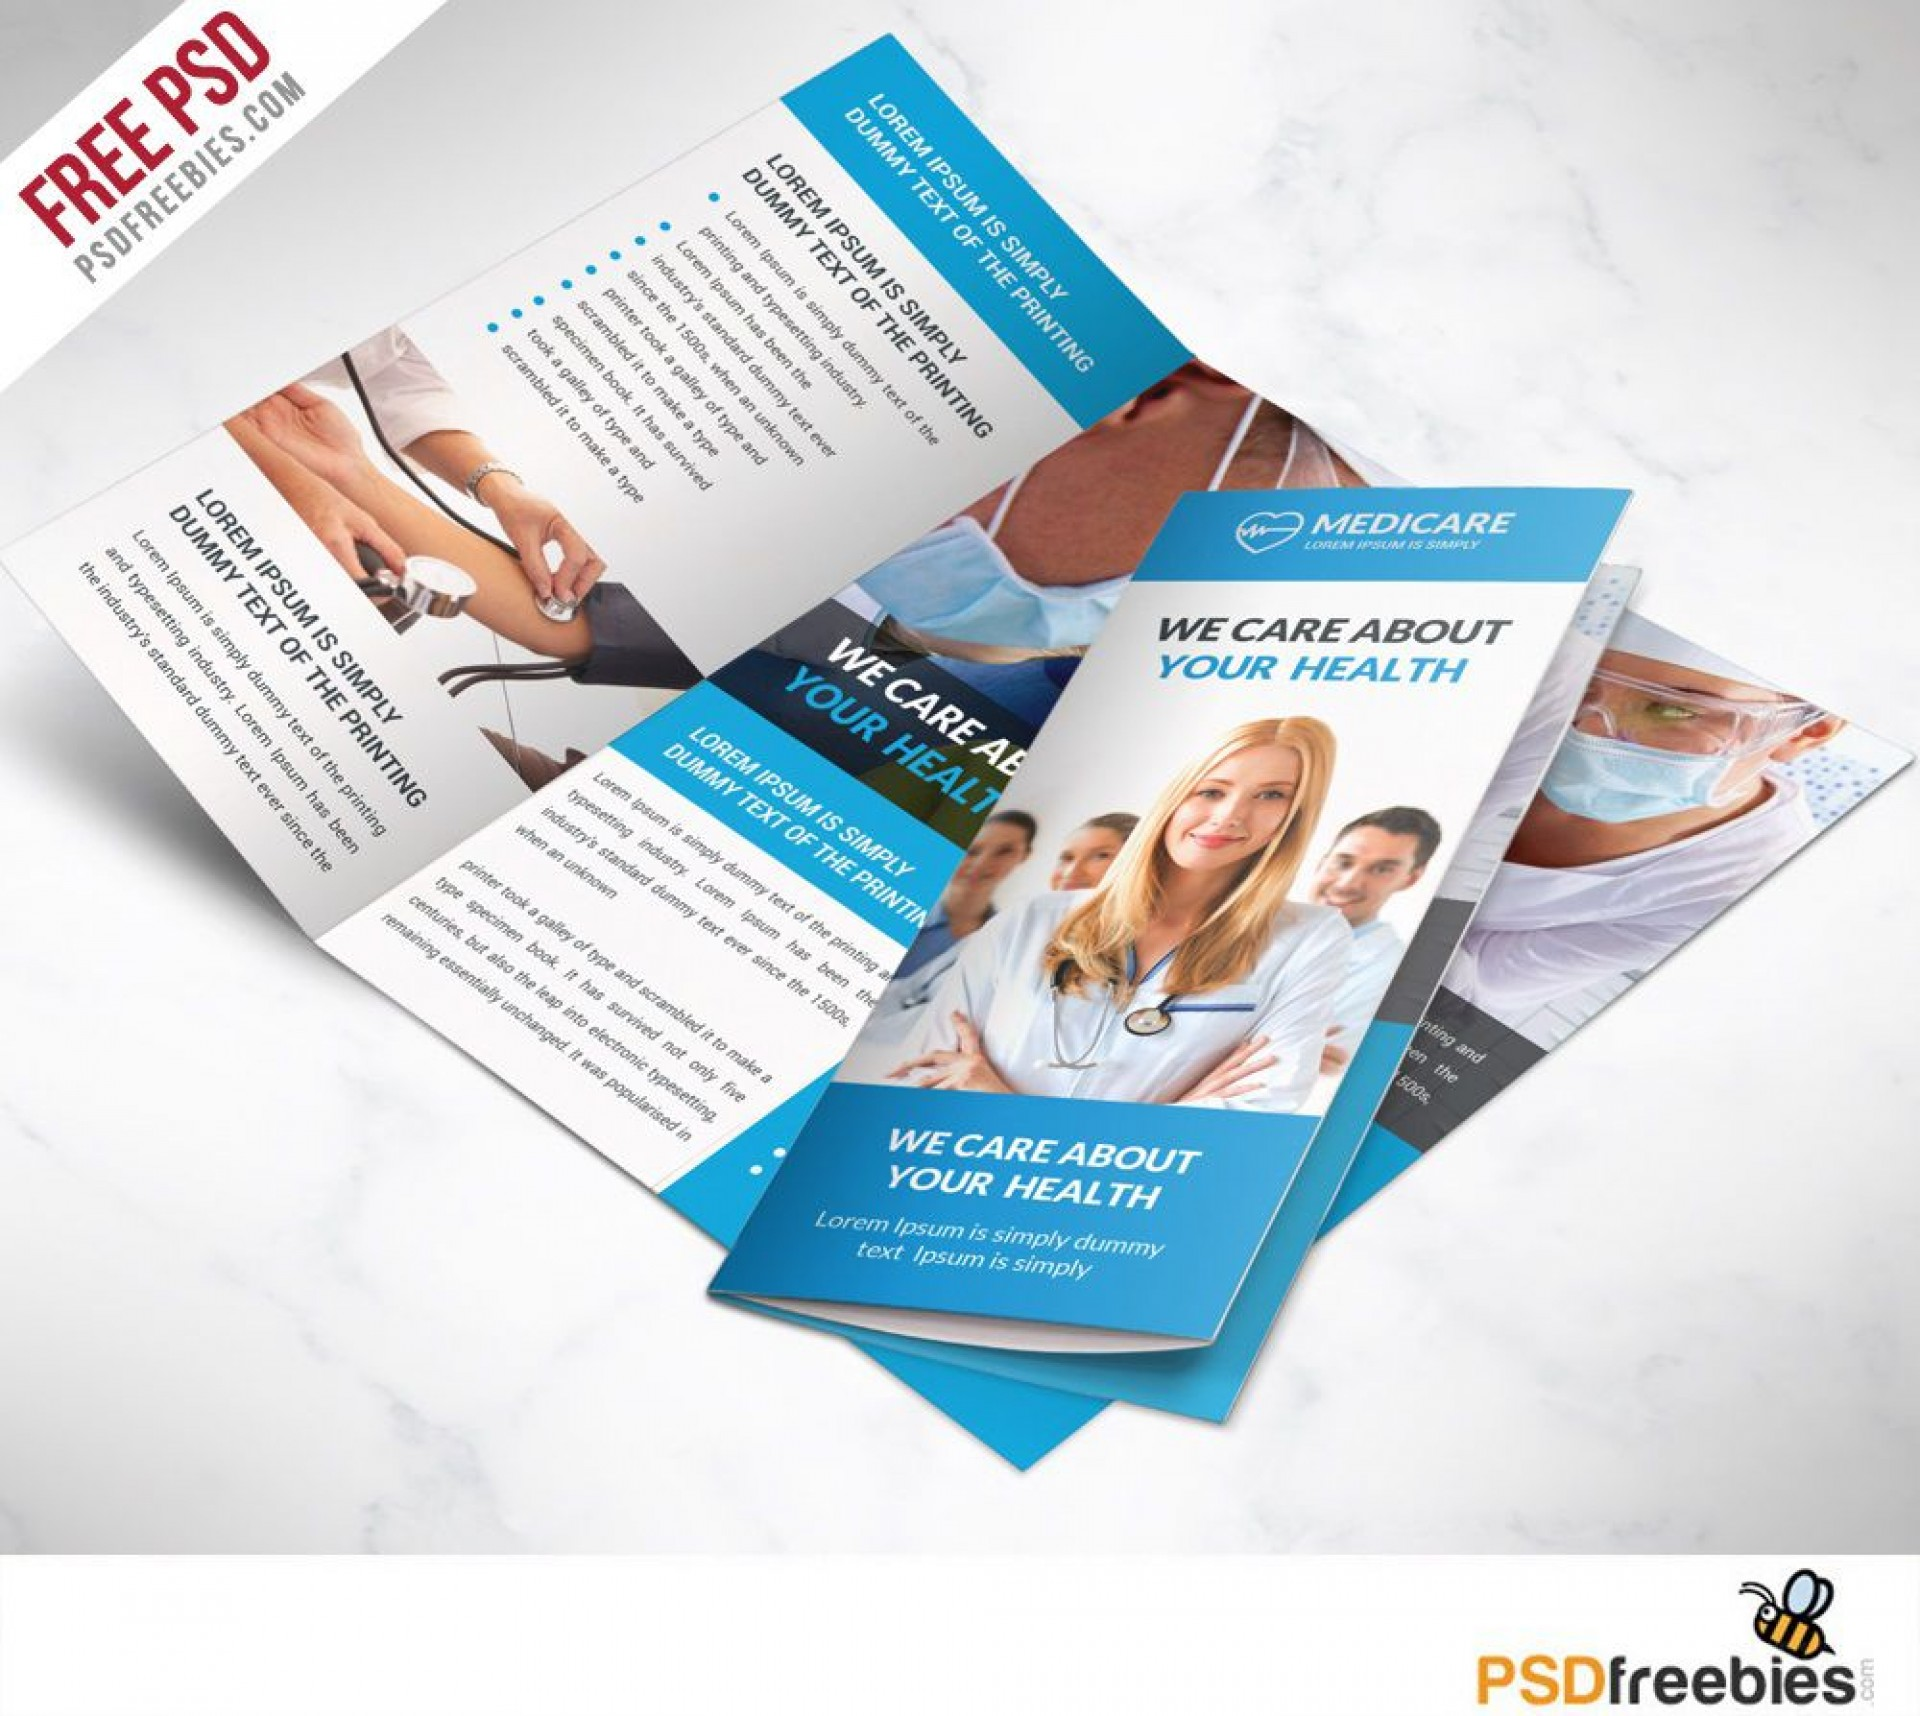 008 Remarkable Free Brochure Template Psd File Front And Back Highest Clarity 1920